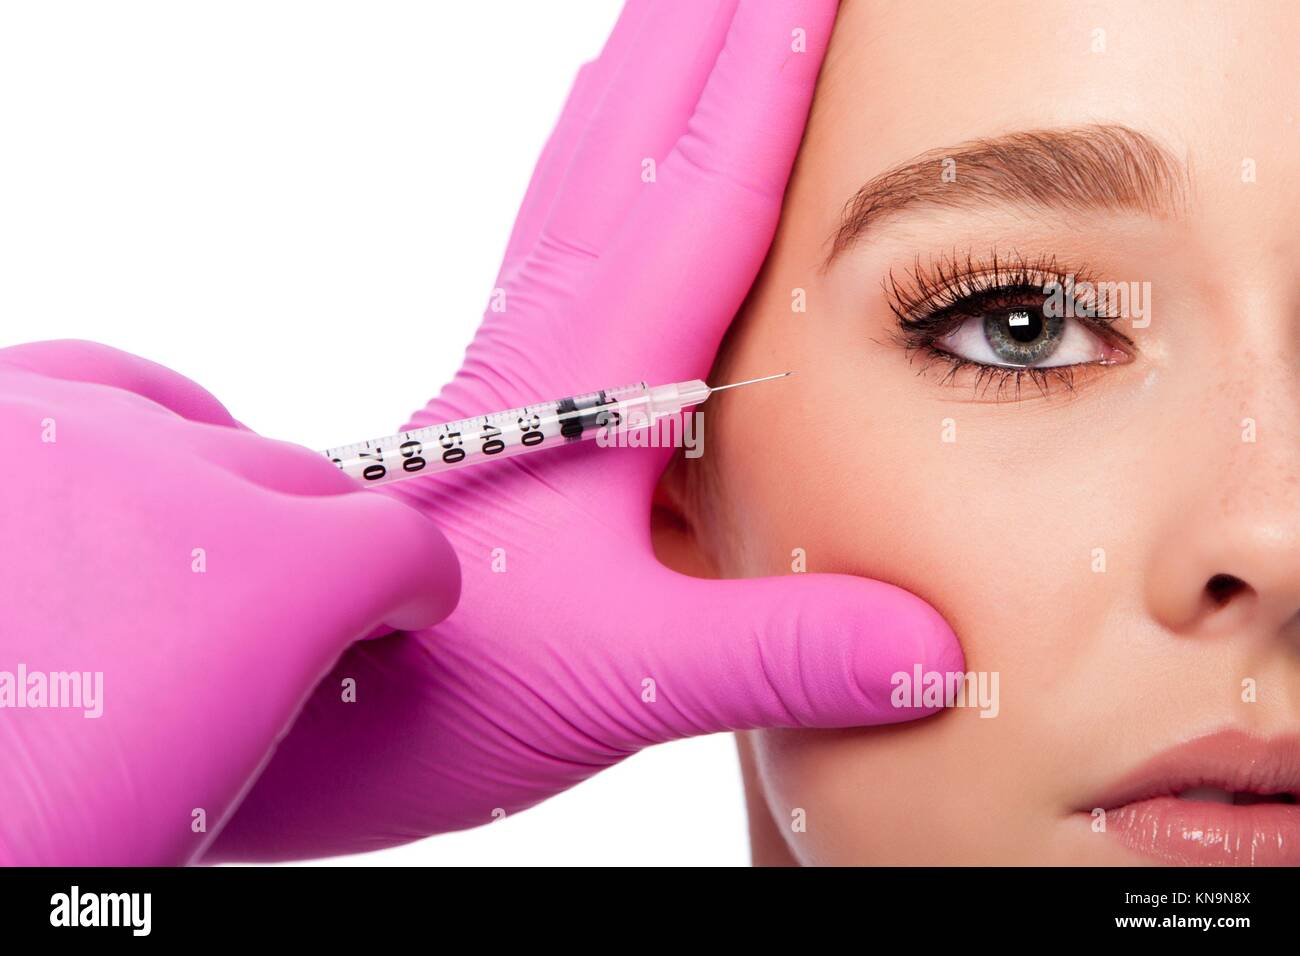 Beautiful face crows feet collagen filler injection Cosmetic skincare spa beauty treatment with pink gloves by eye, - Stock Image